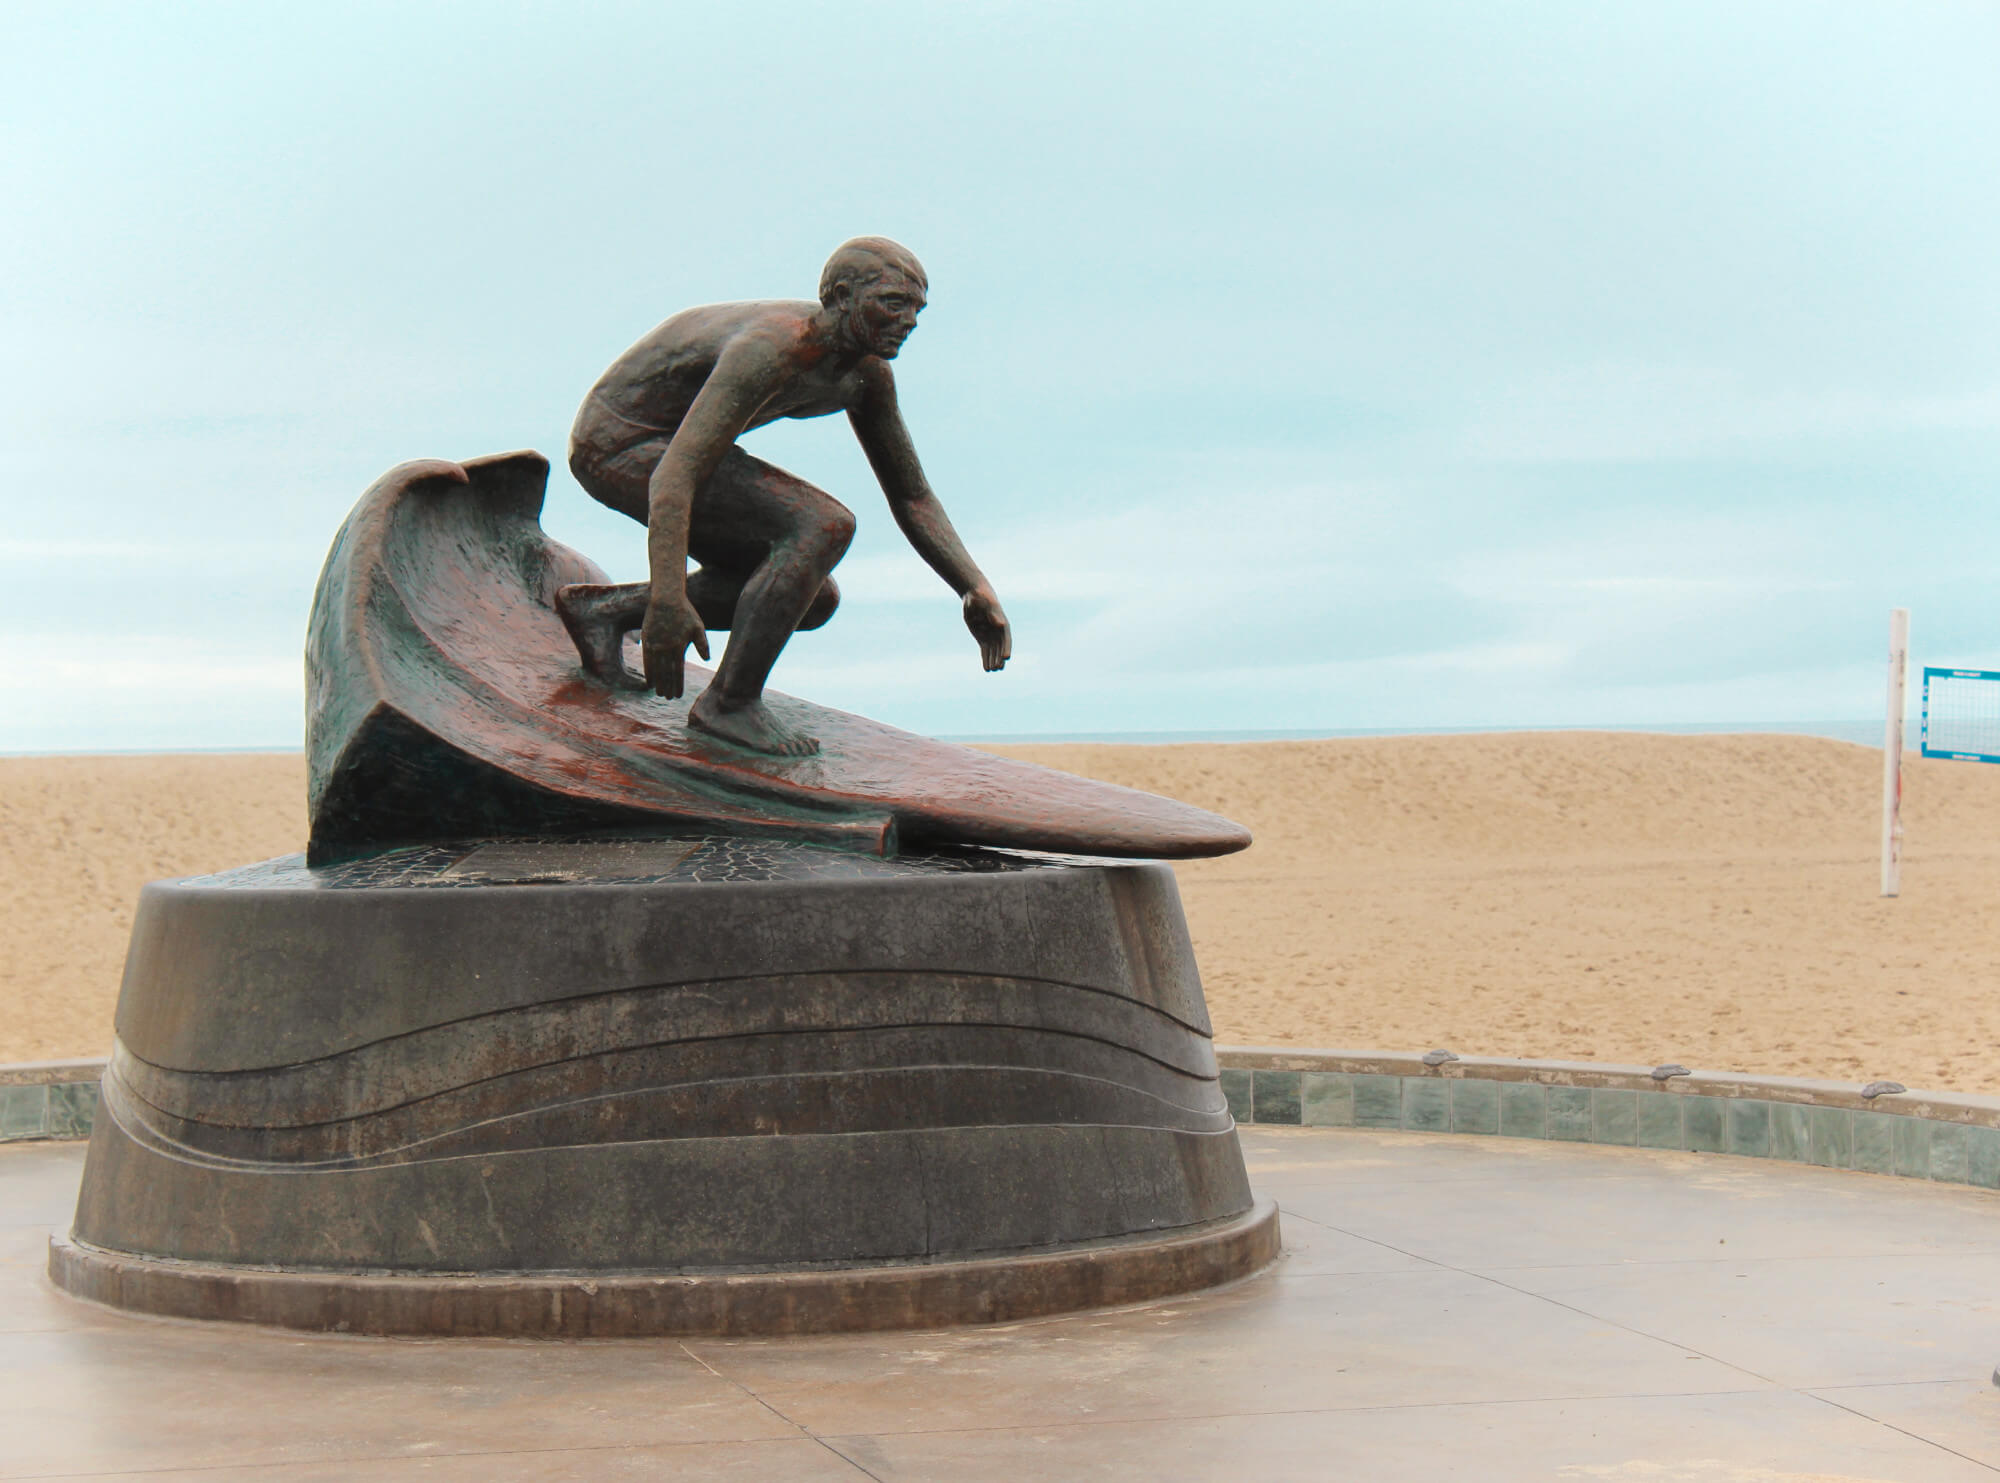 Surfer statue in Hermosa Beach Pier on the Strand, South Bay, Los Angeles, California